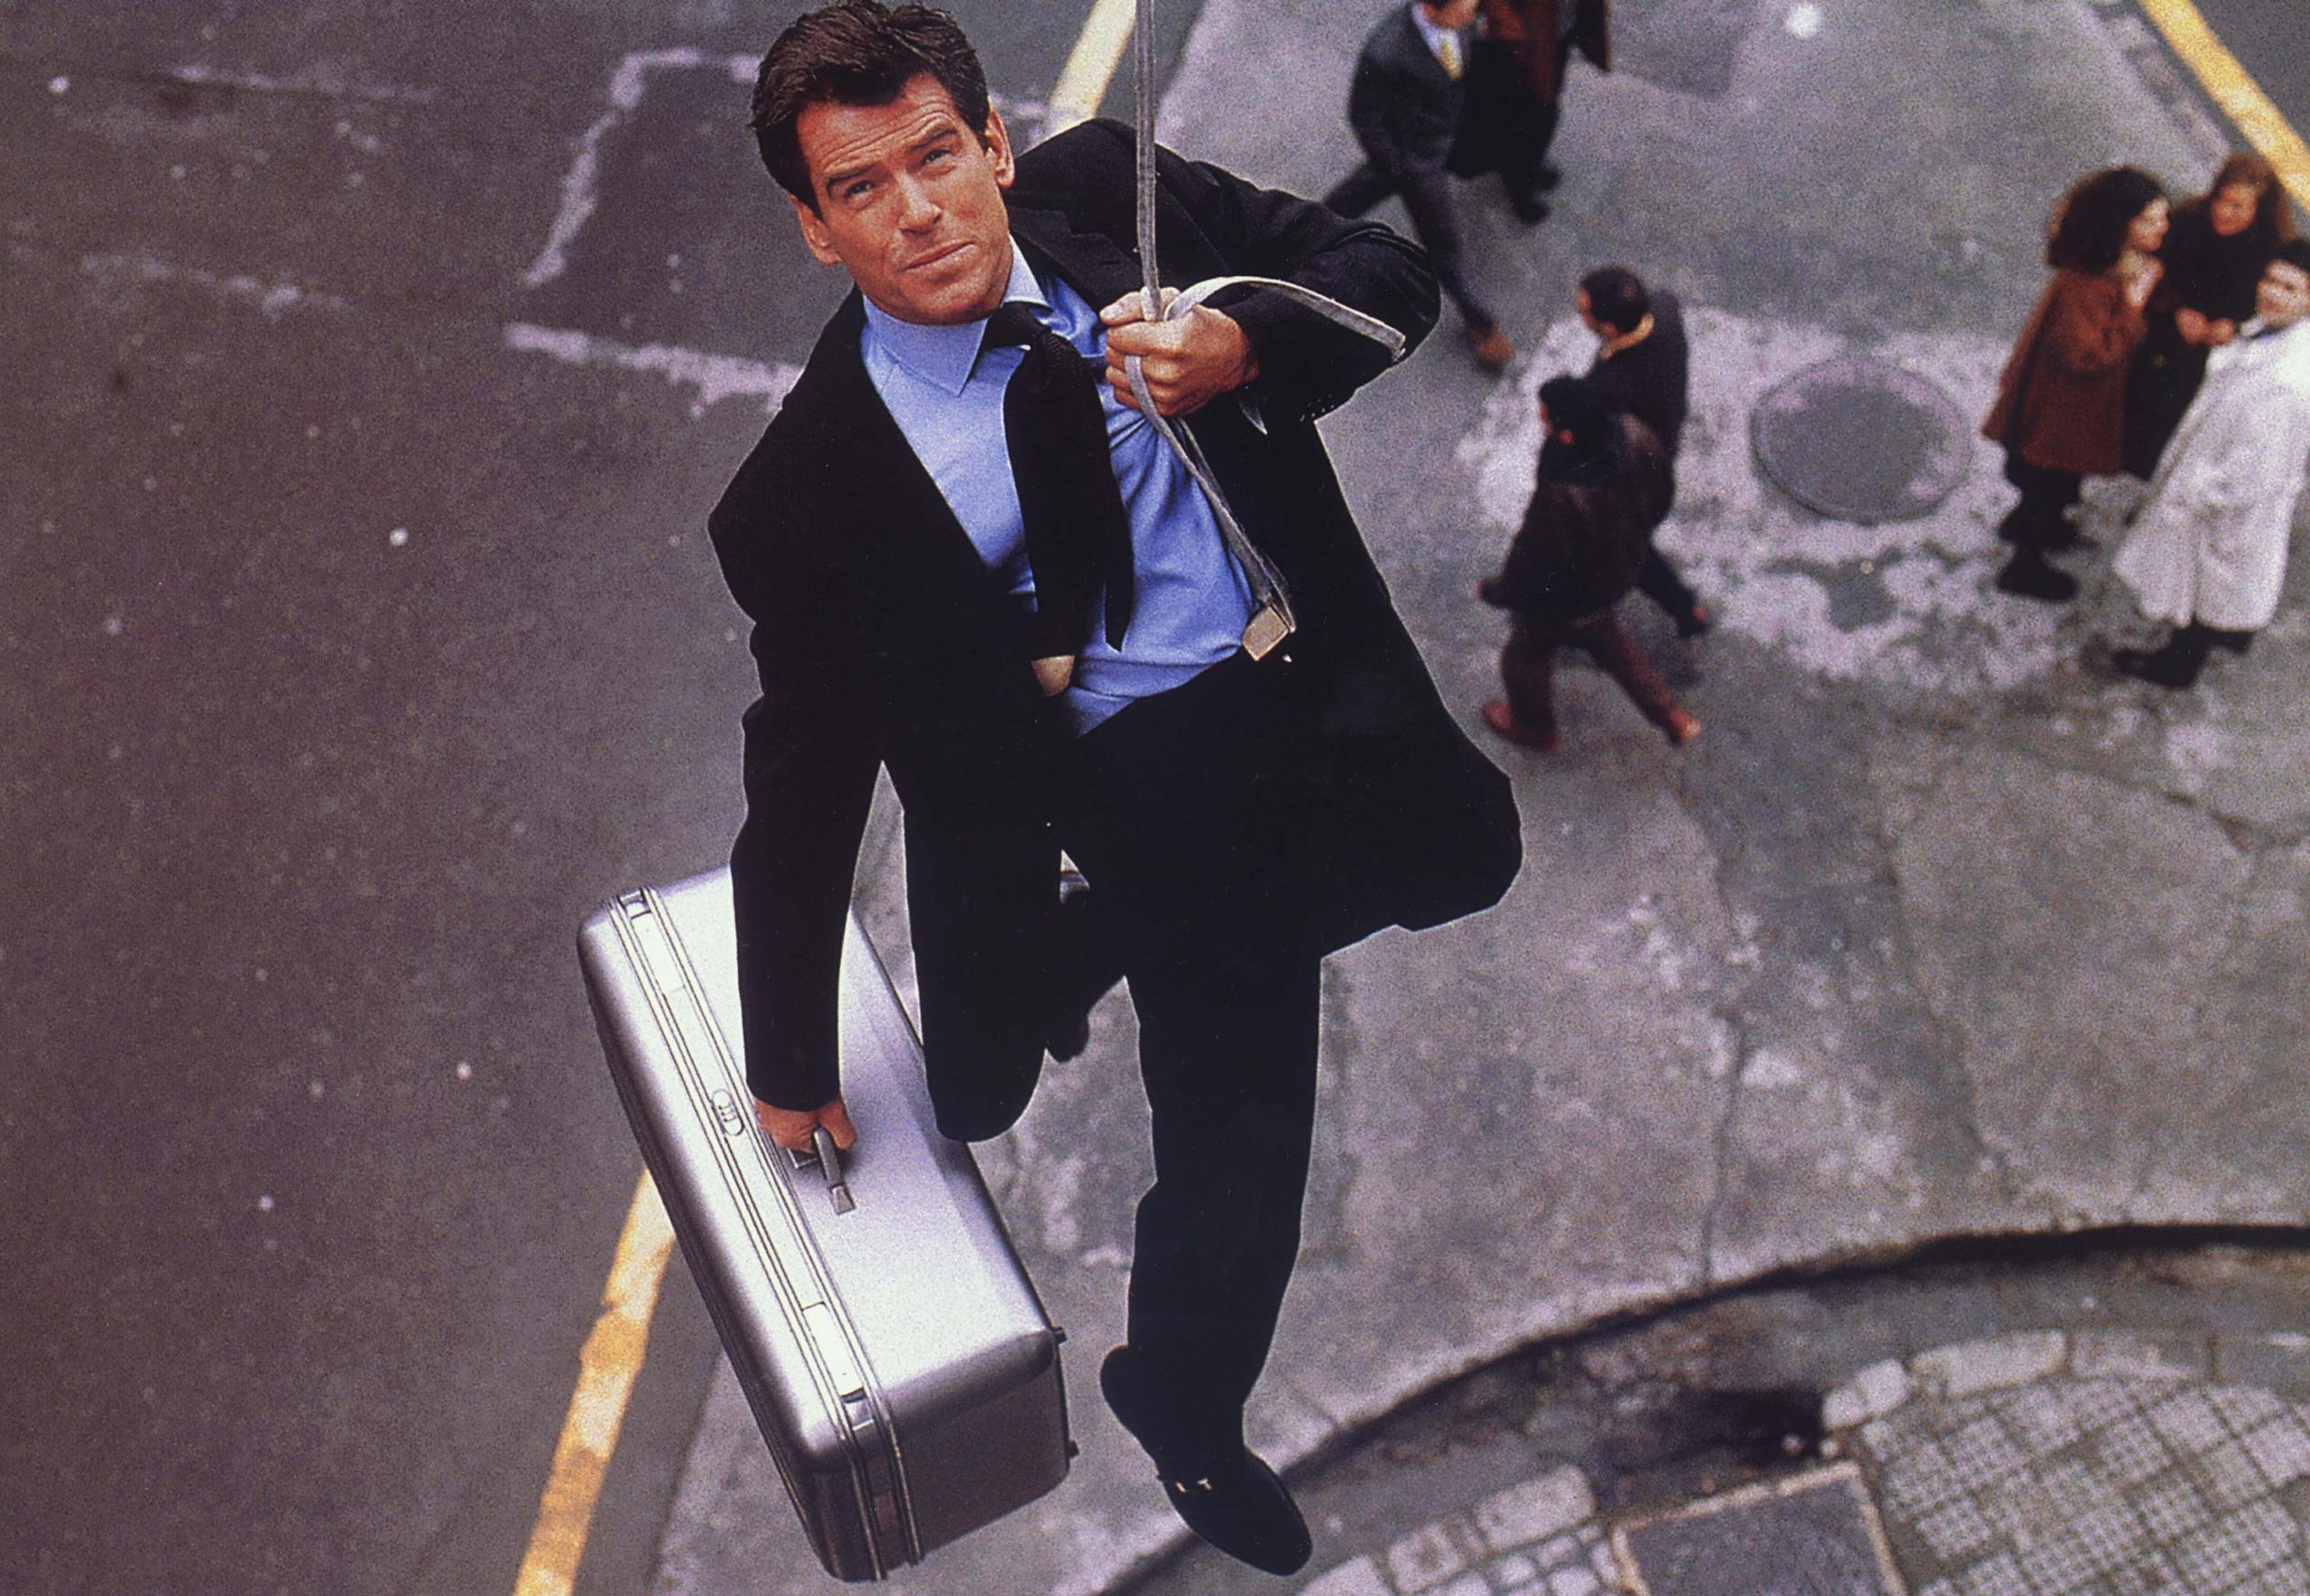 <strong><i>The World Is Not Enough</i> (1999) - Pierce Brosnan</strong>